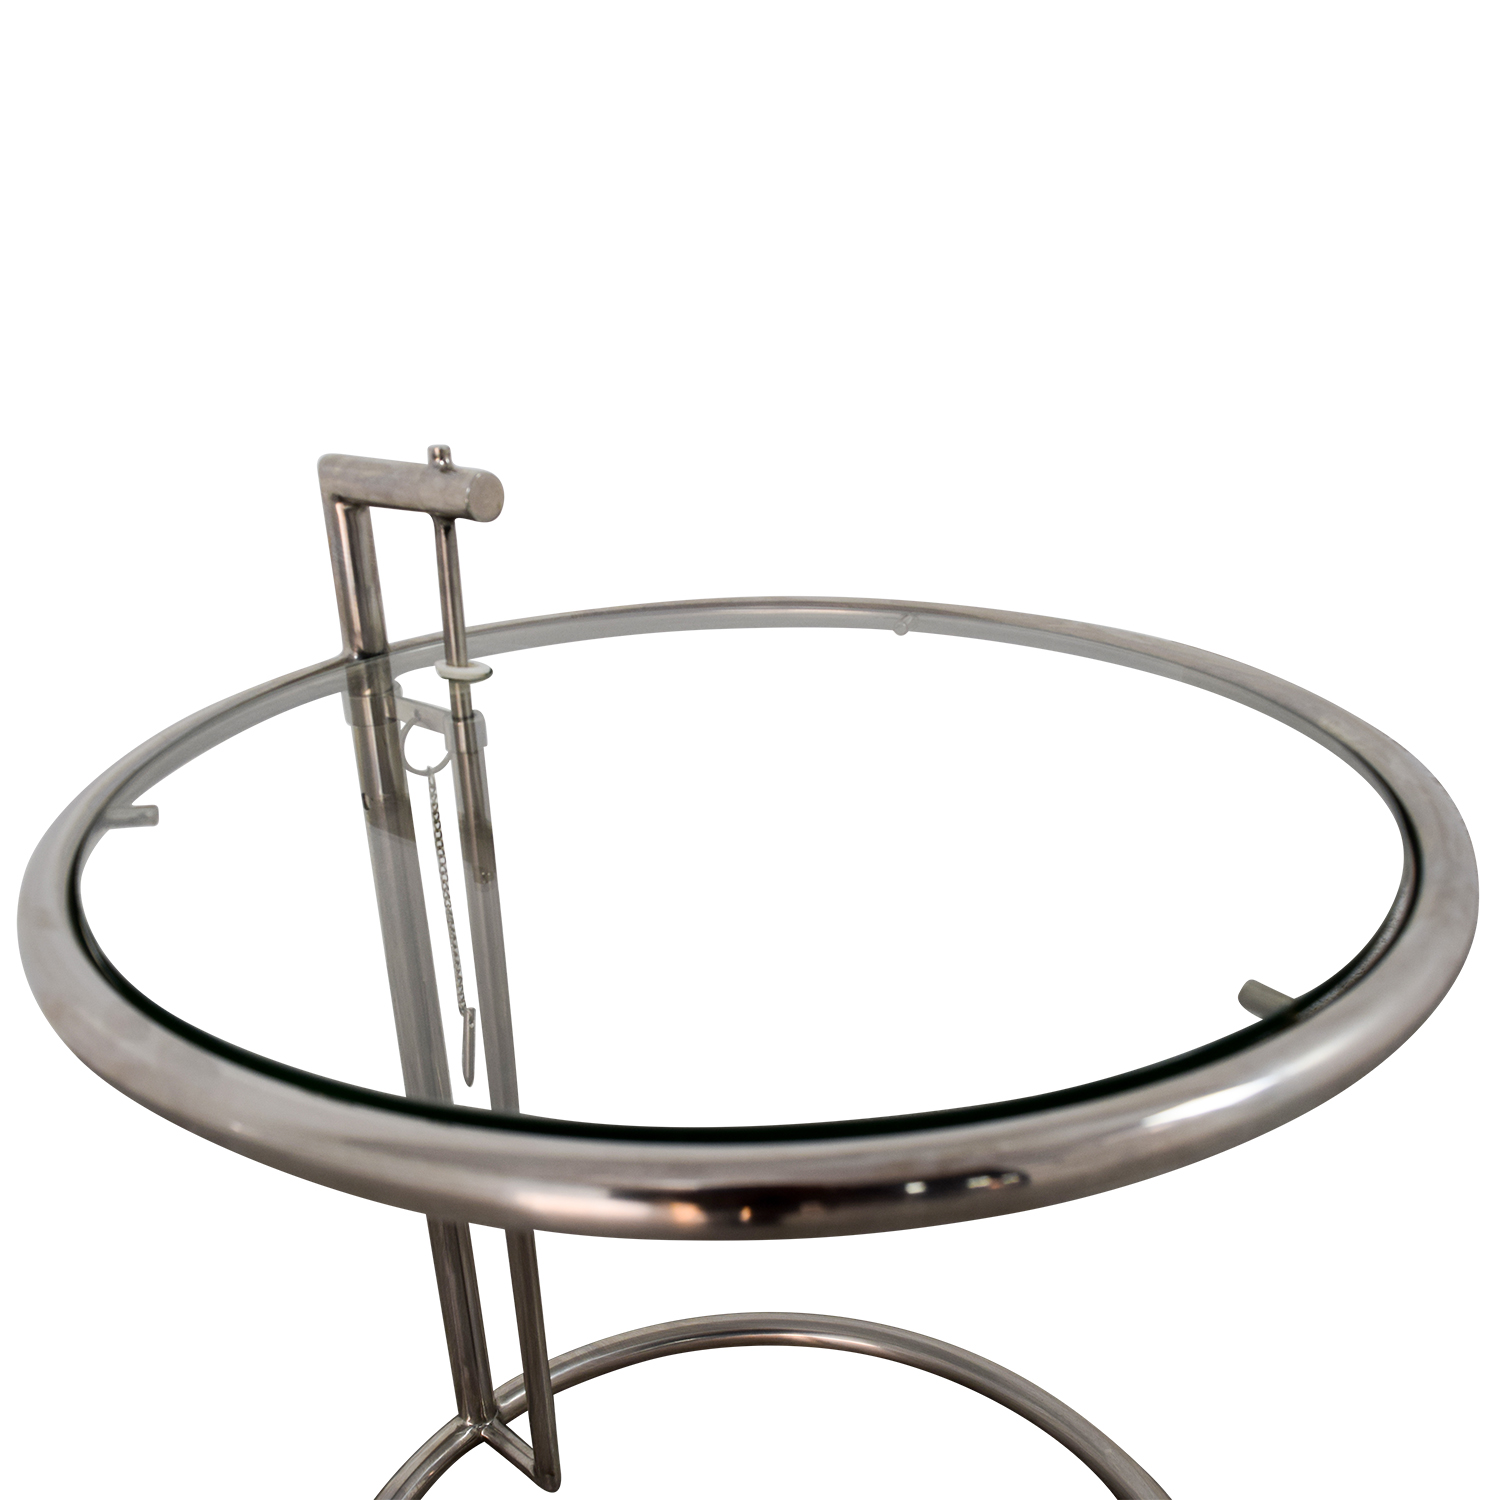 Eileen Gray Table Eileen Gray Table